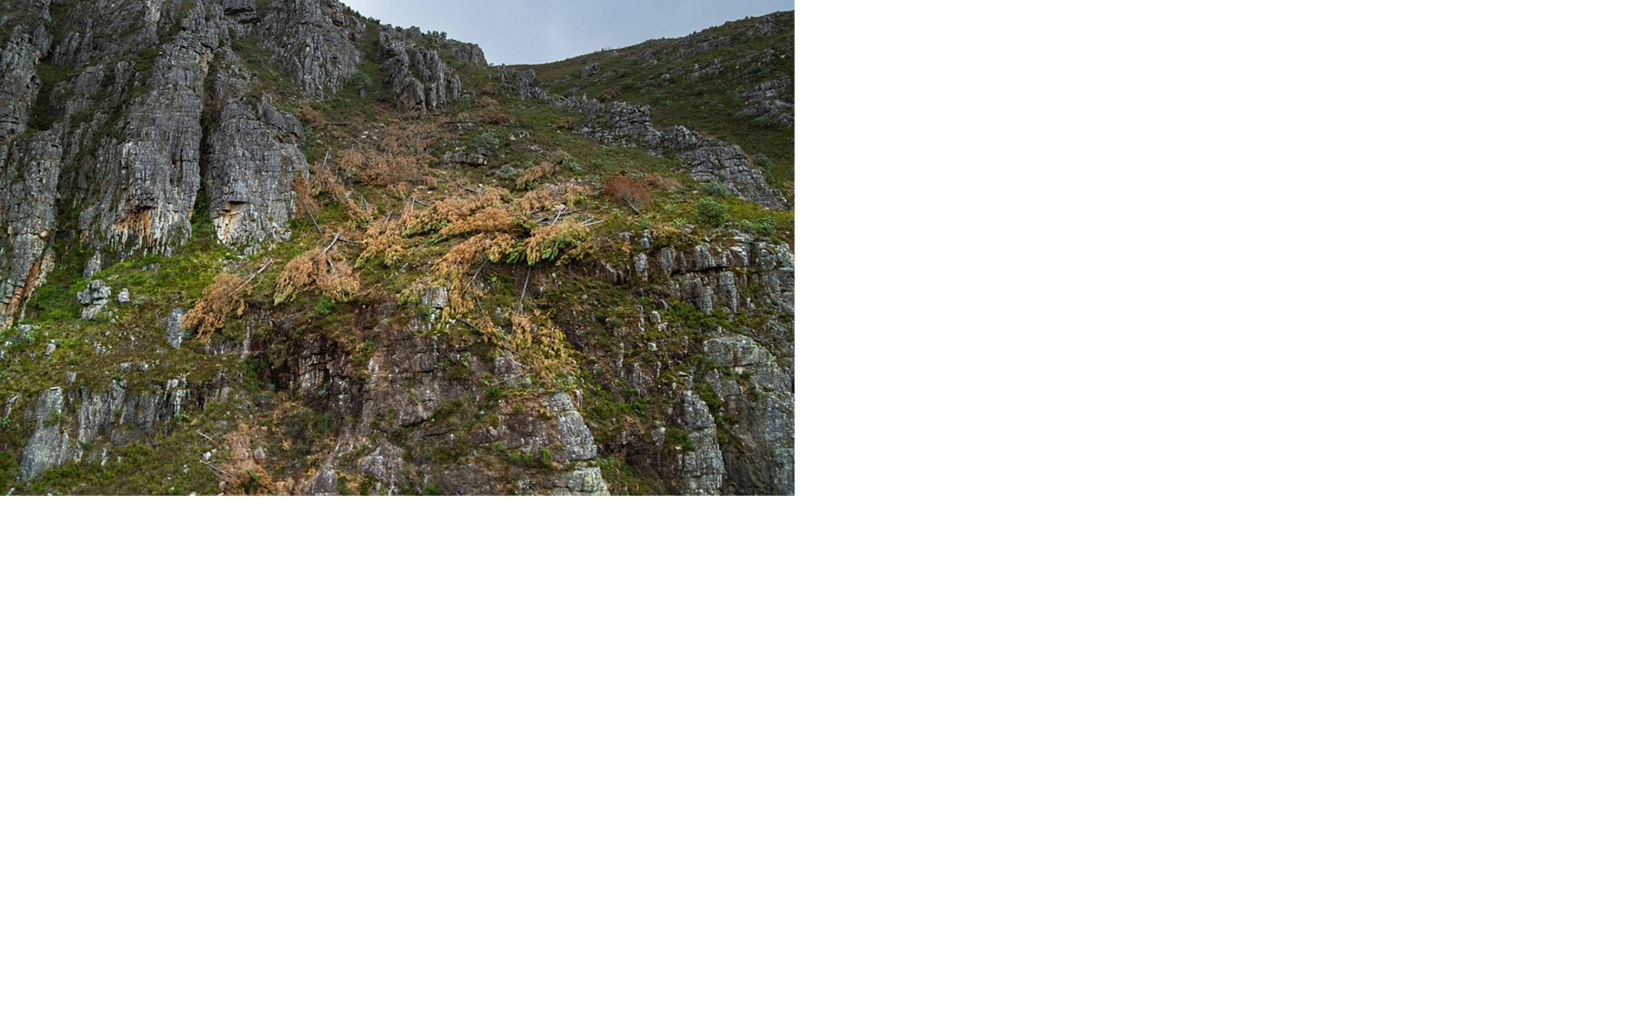 The result of invasive pine removal within the Greater Cape Town Region.